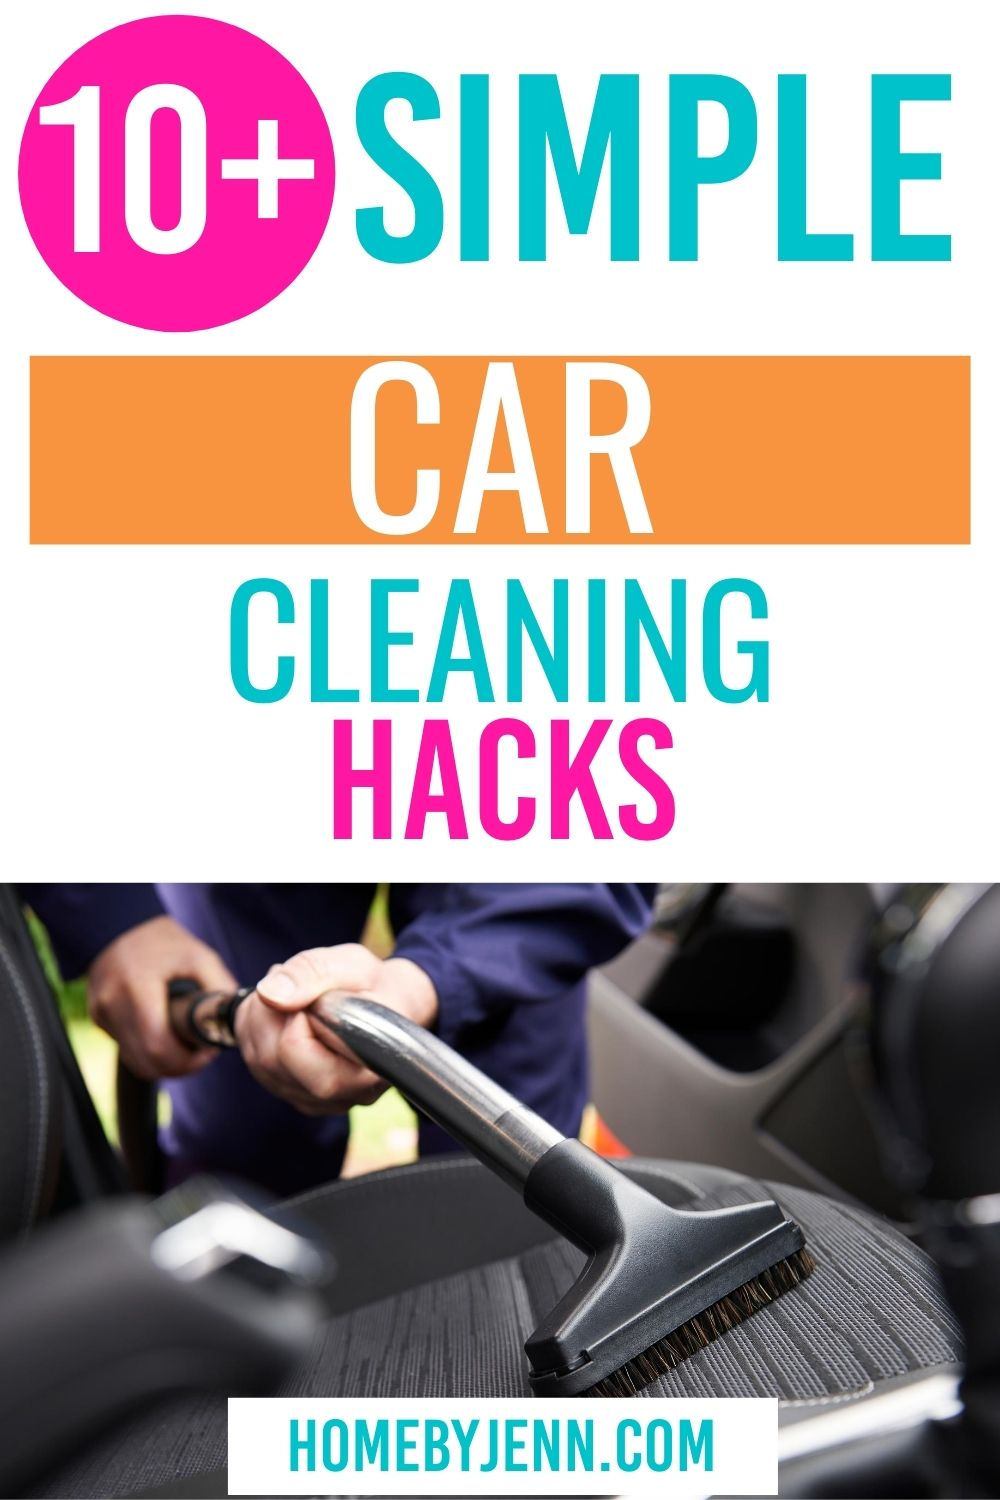 Learn how to keep your car looking new with these car cleaning hacks. Parents will love these cleaning tips for cars. #cleaningtips #cleaninghacks #carcleaninghacks #cleancar via @homebyjenn